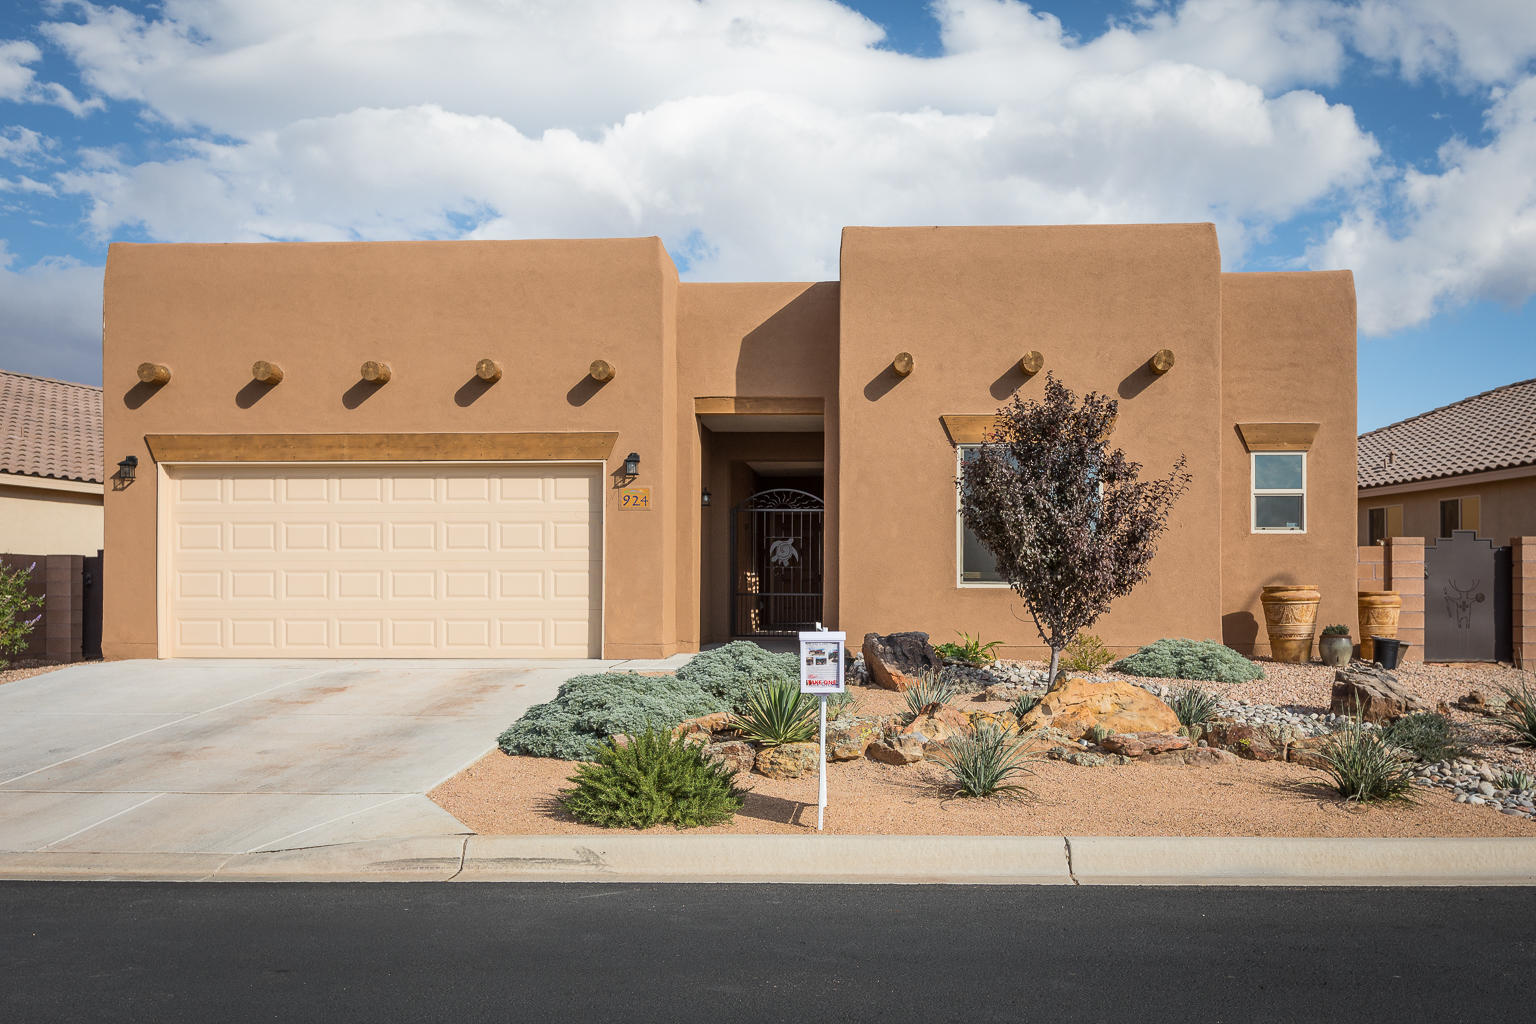 924 SALT CEDAR COURT, BERNALILLO, NM 87004